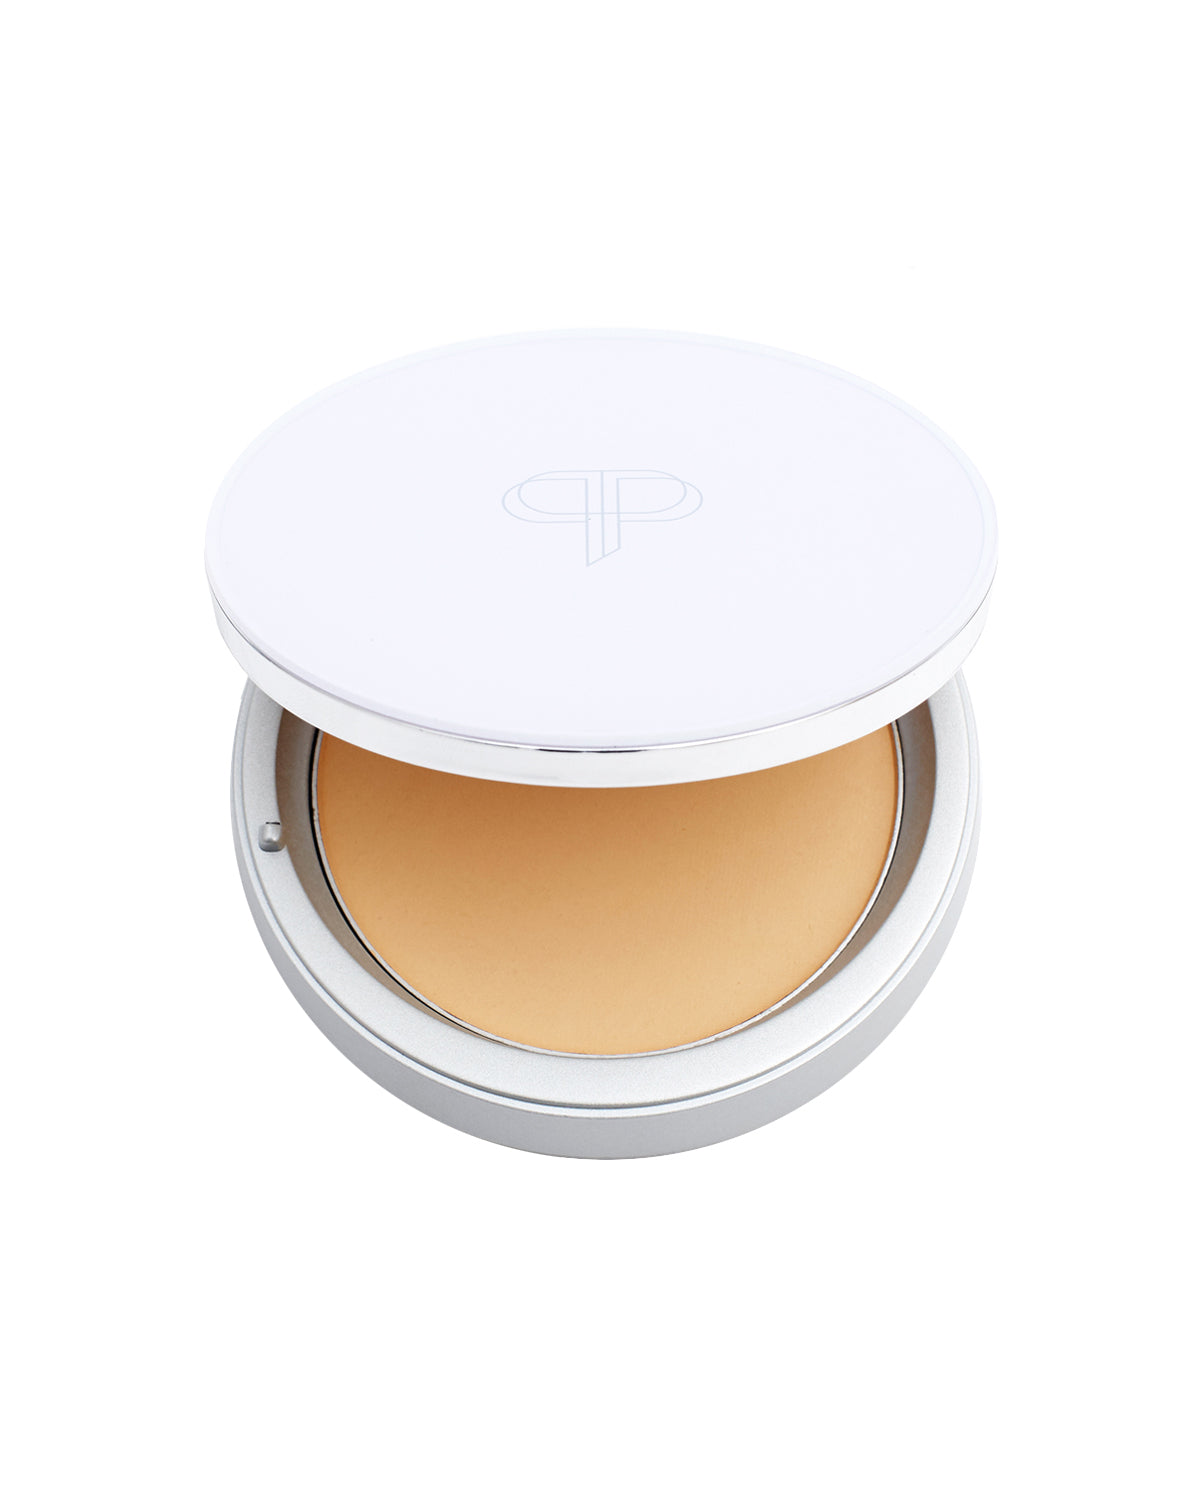 Perfume Powder Pact 5G Matte